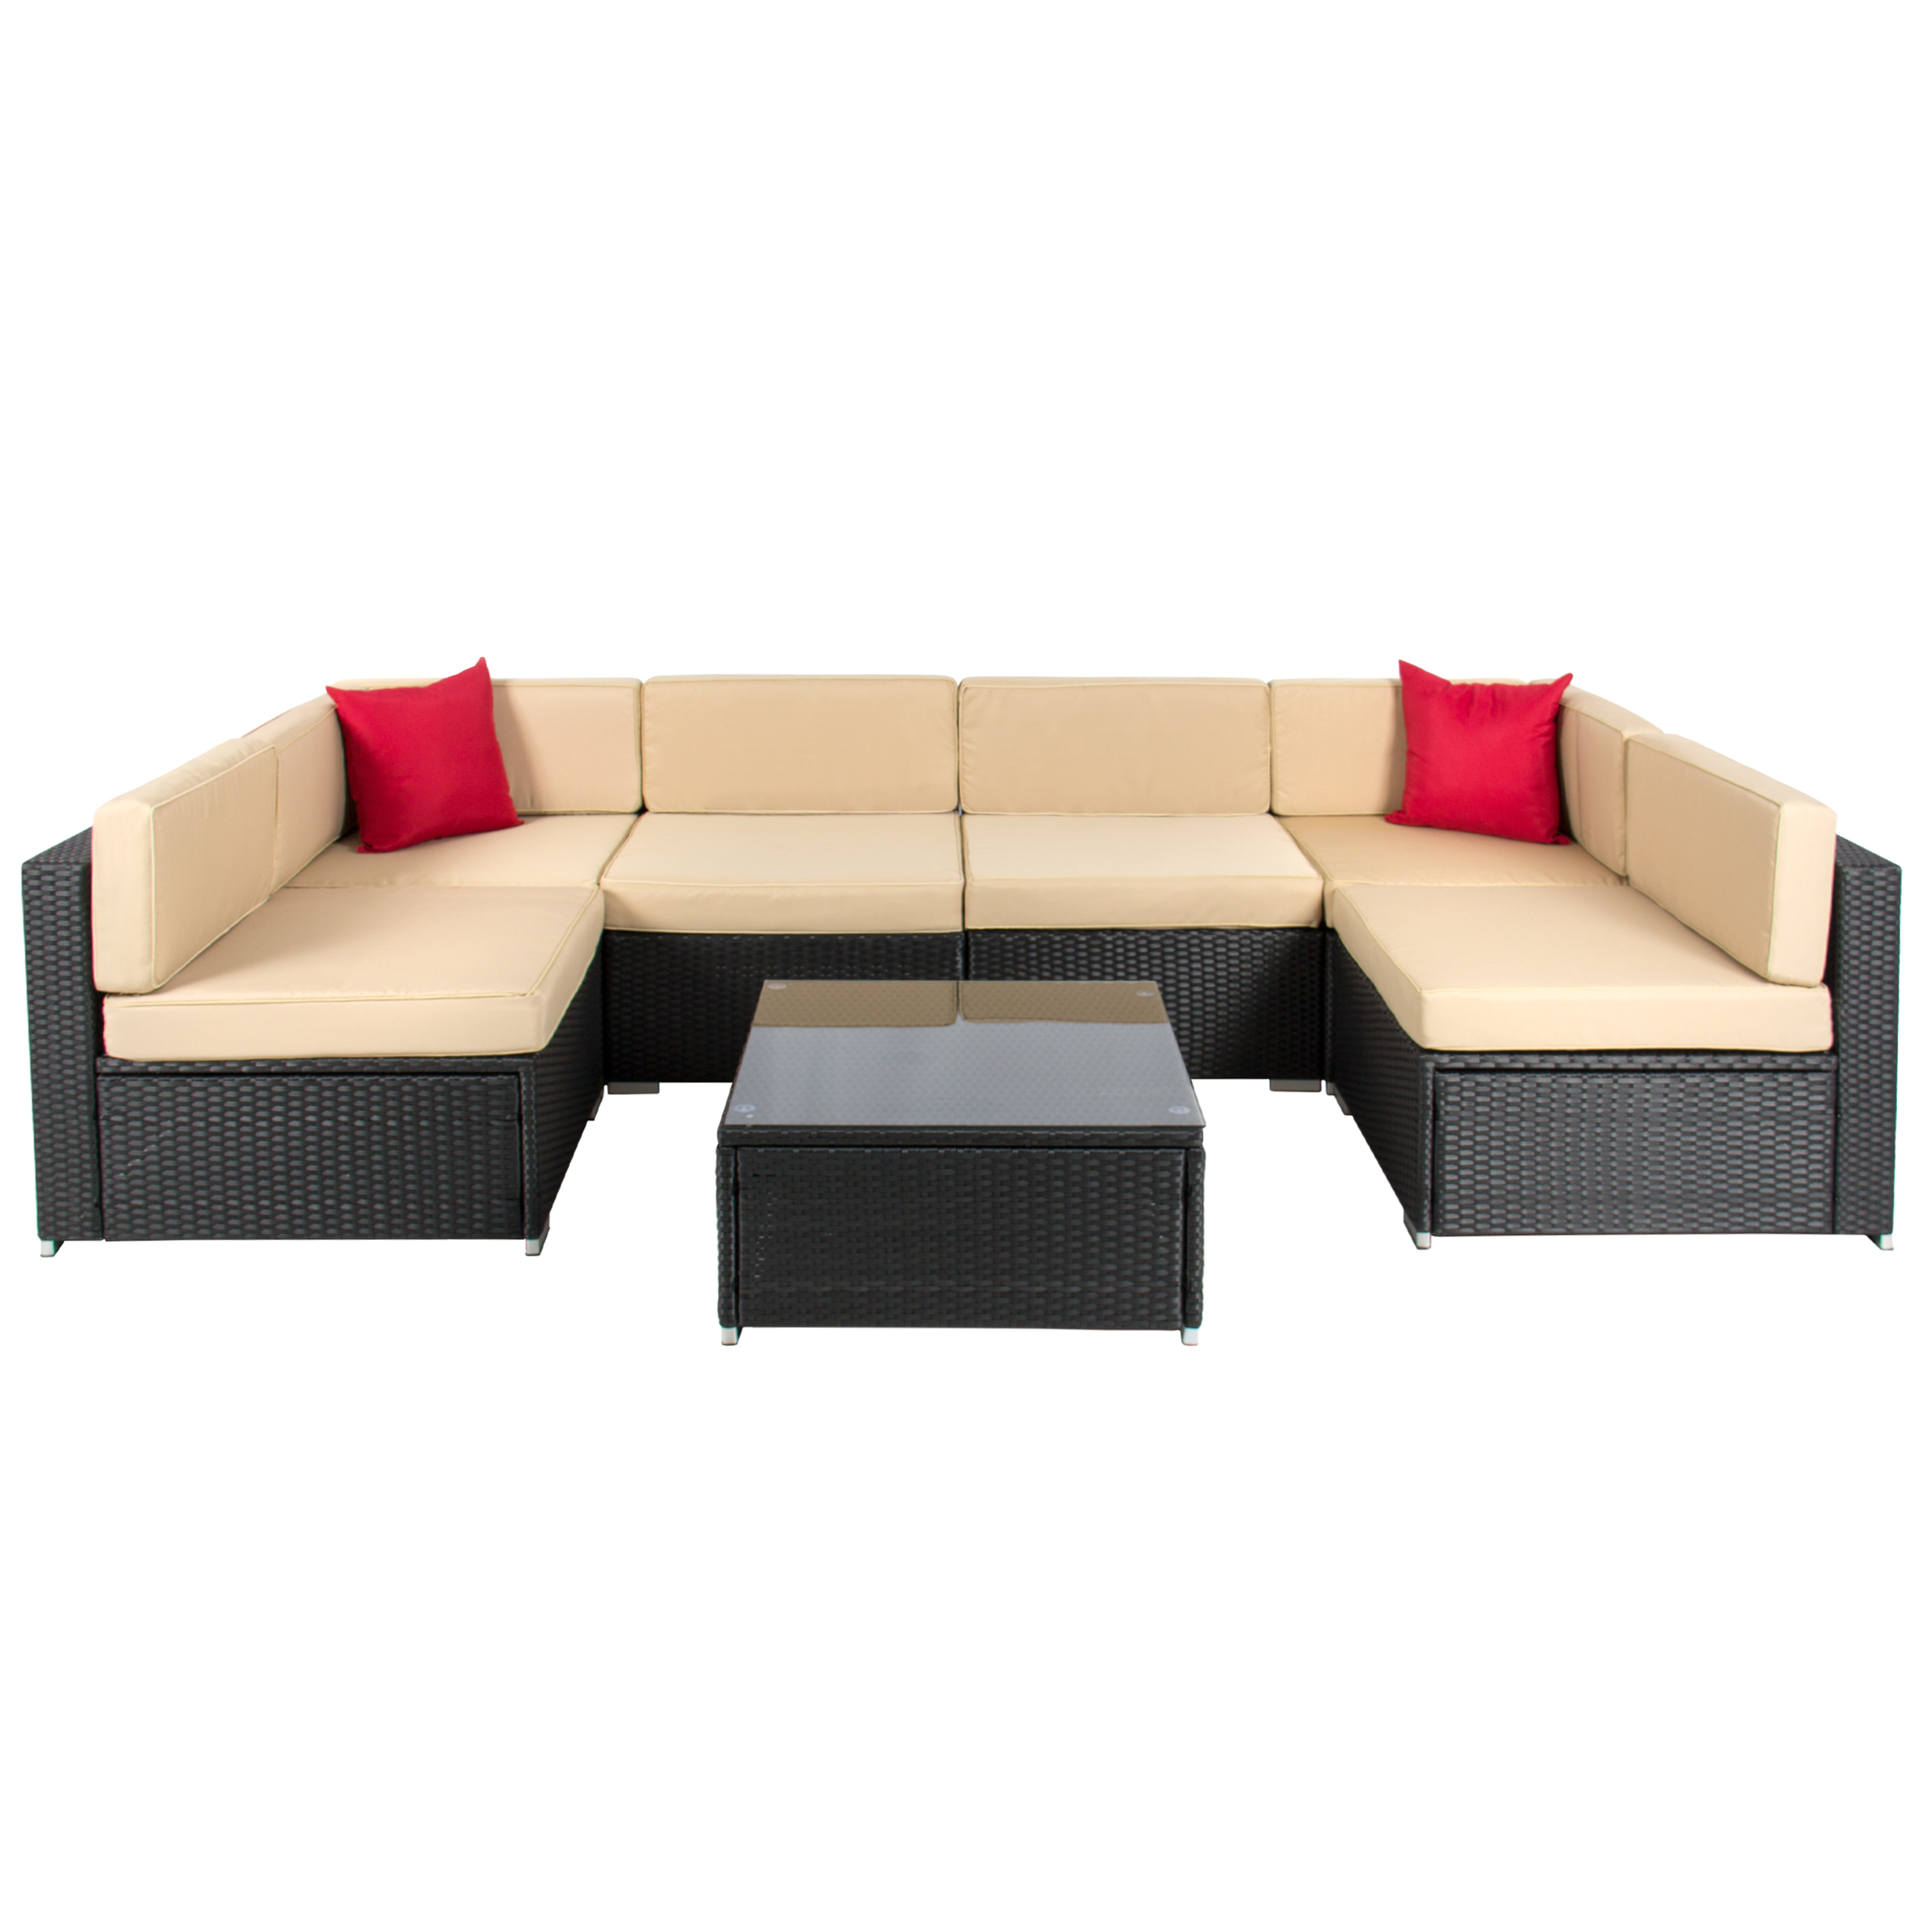 Sofa Furniture best choice products 7pc outdoor patio garden wicker furniture